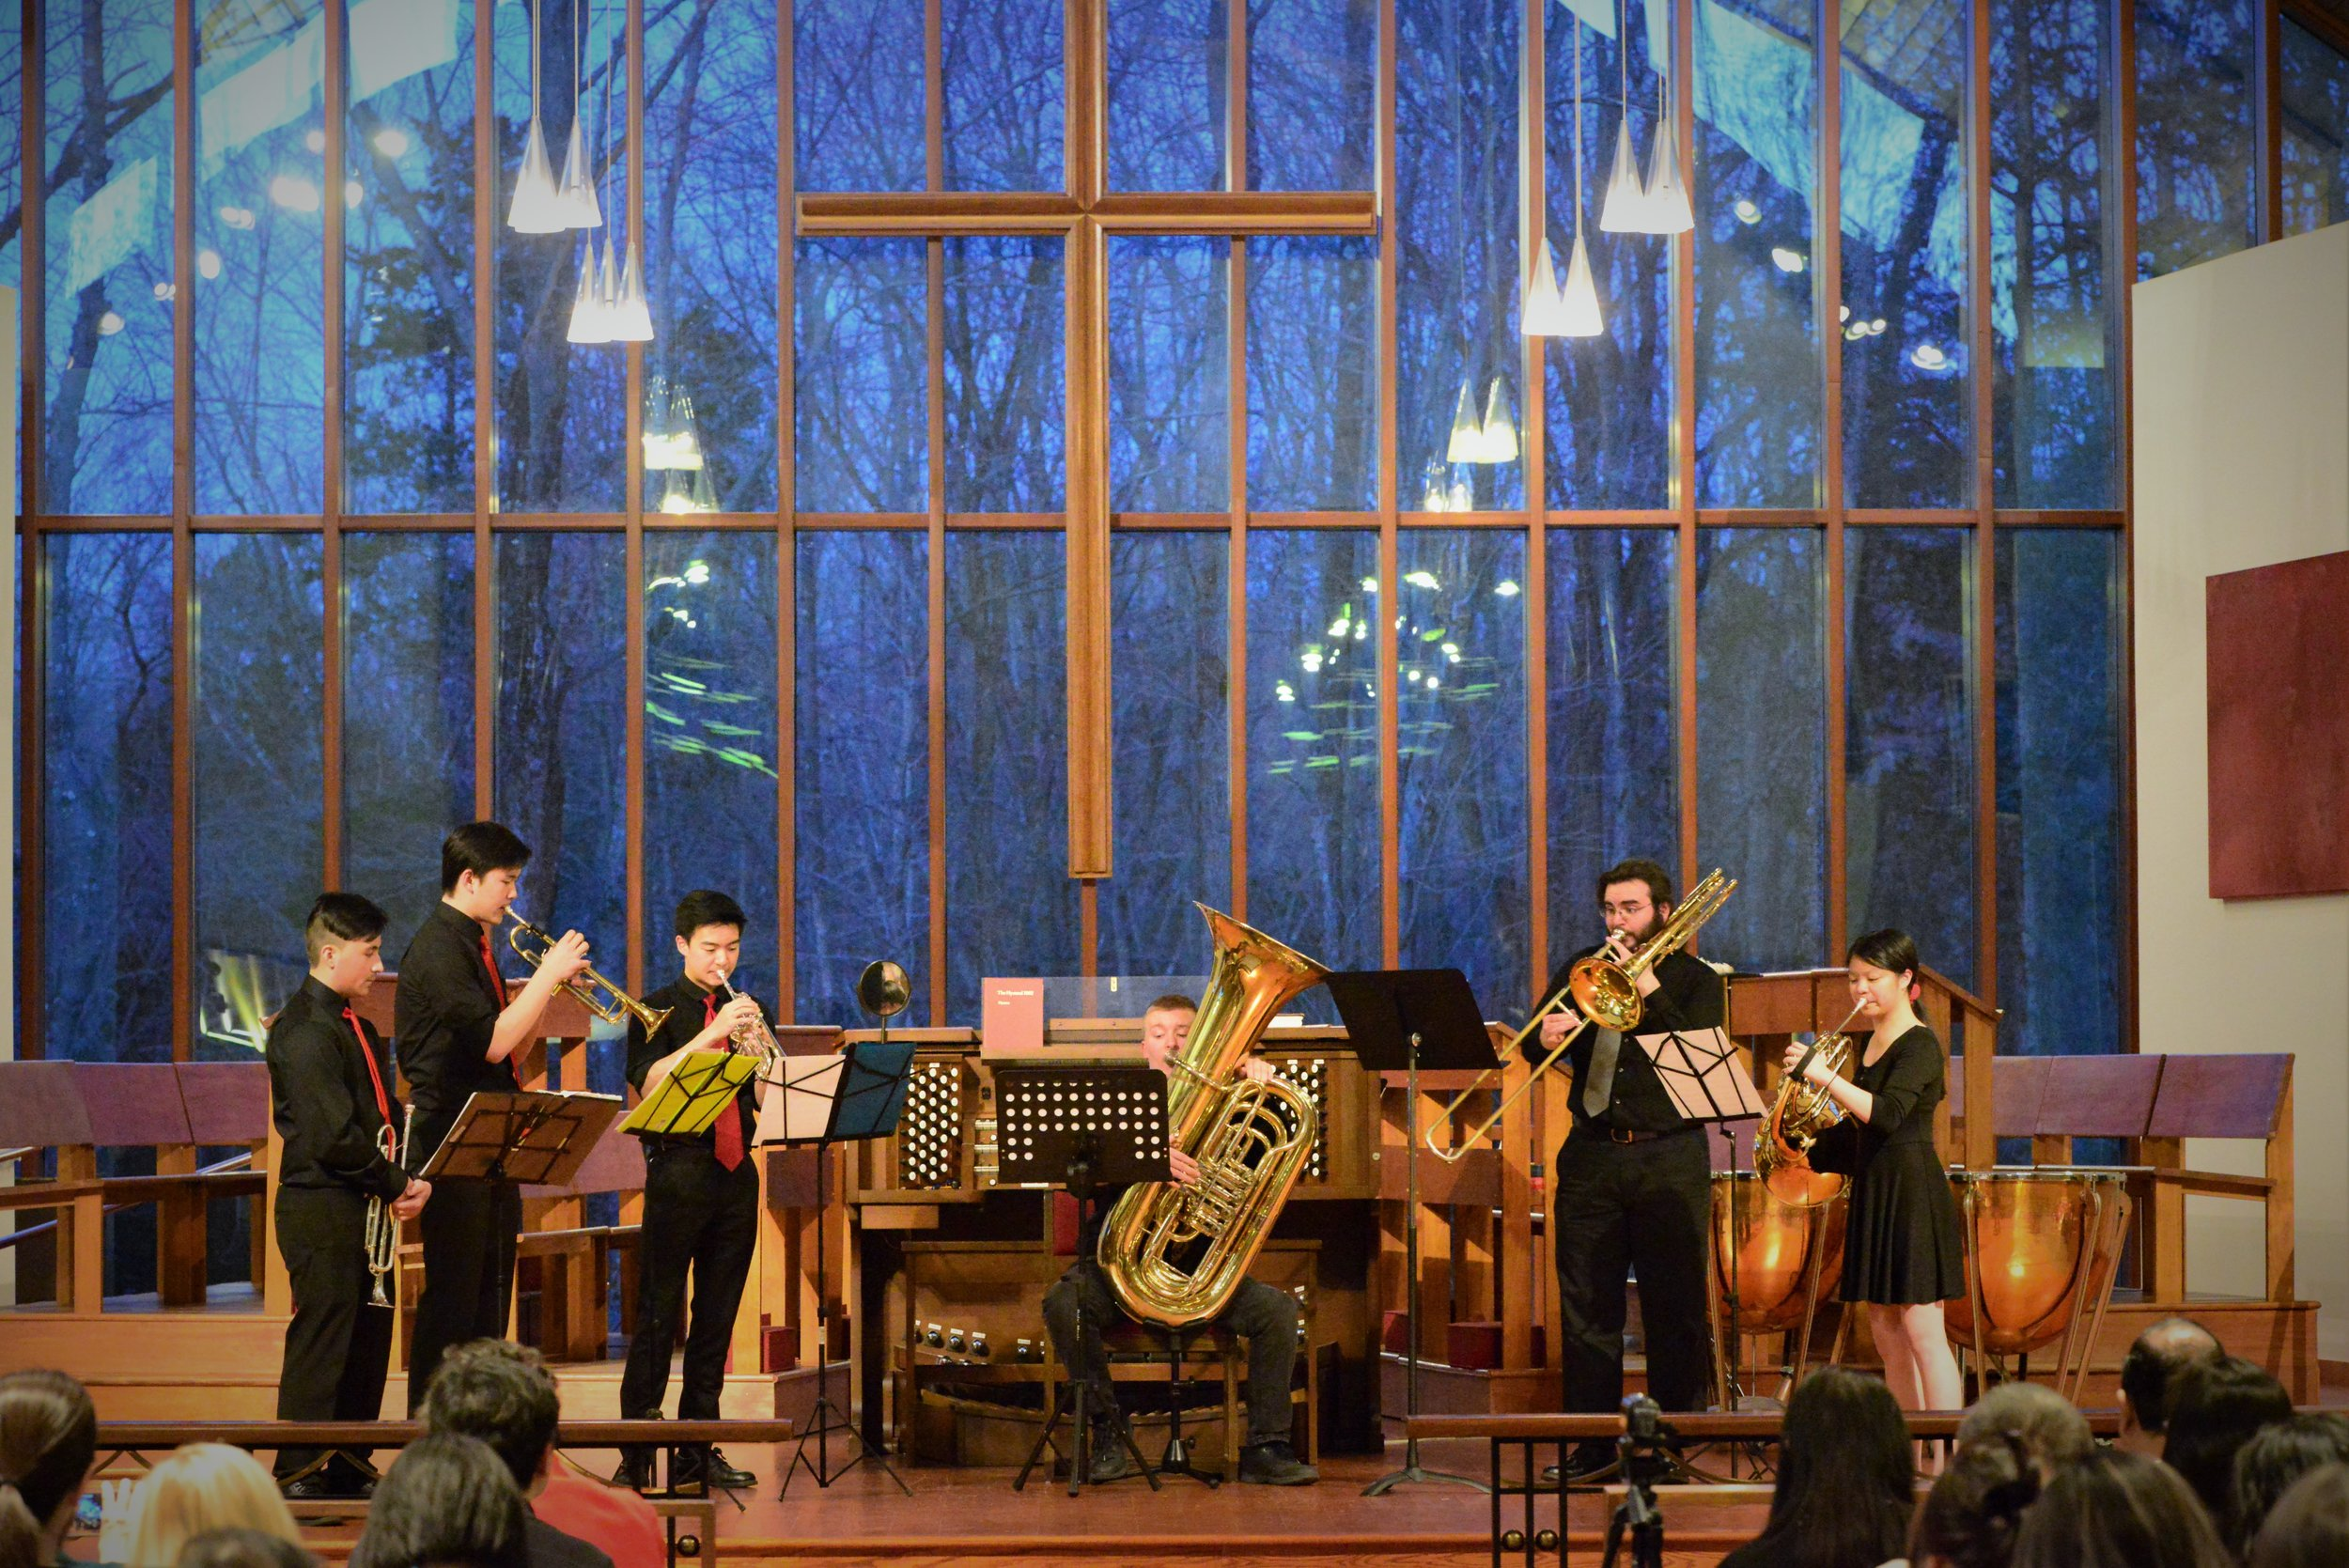 Wind Ensemble performing Brass Quintet No. 1 by Victor Ewald